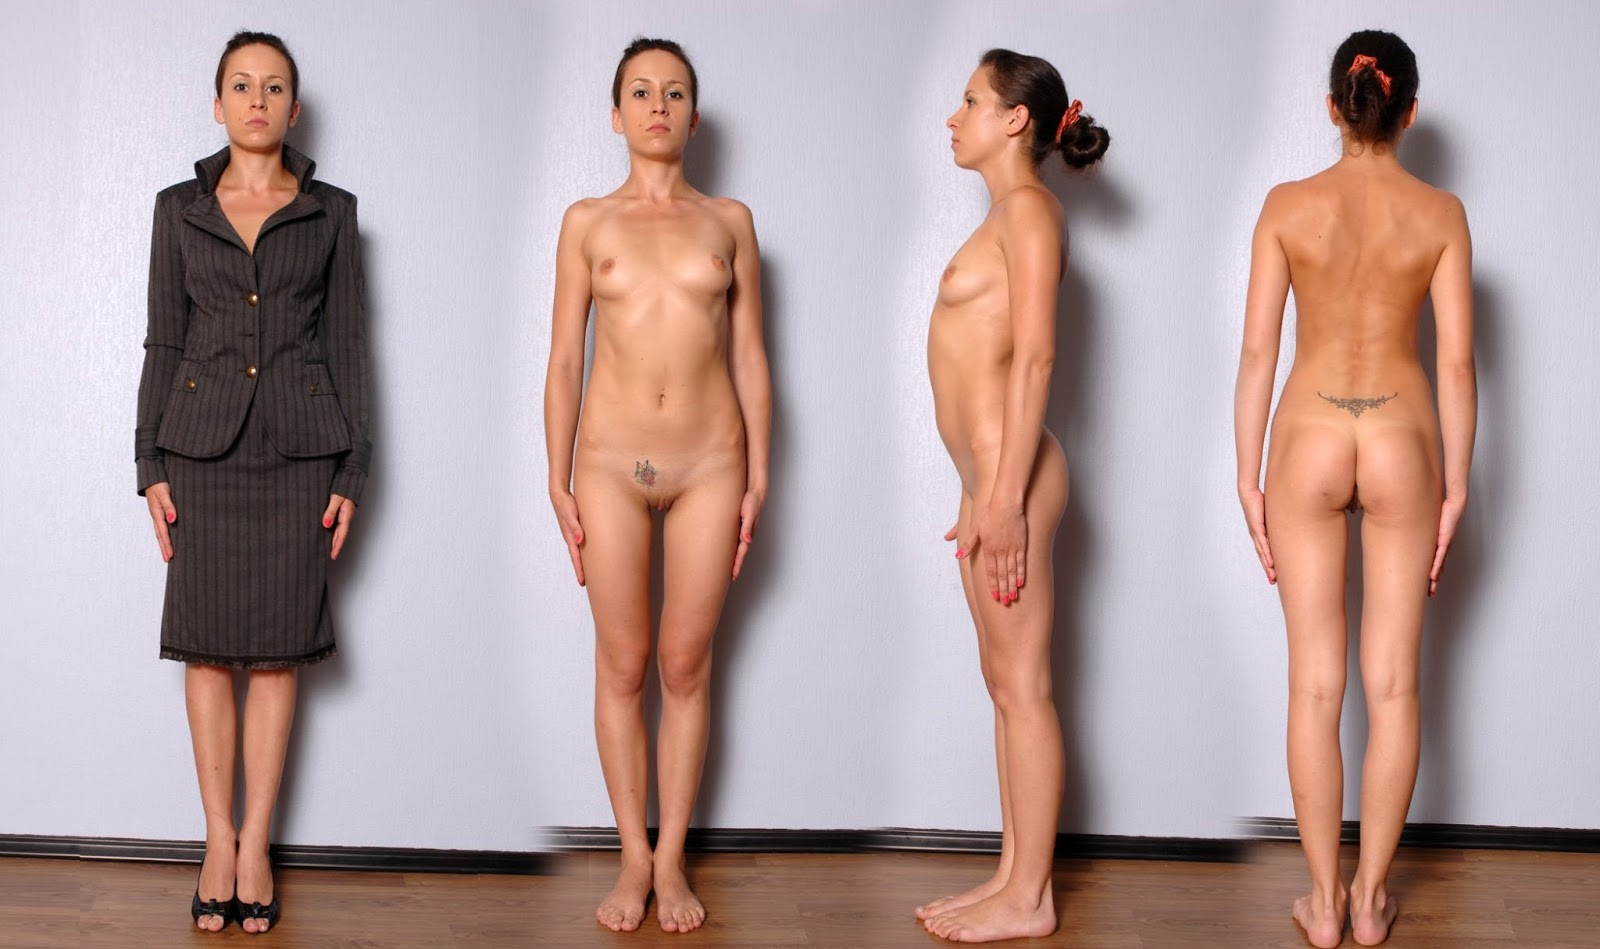 Model Audition - Posing Side By Side Cloth Unclothed -3120